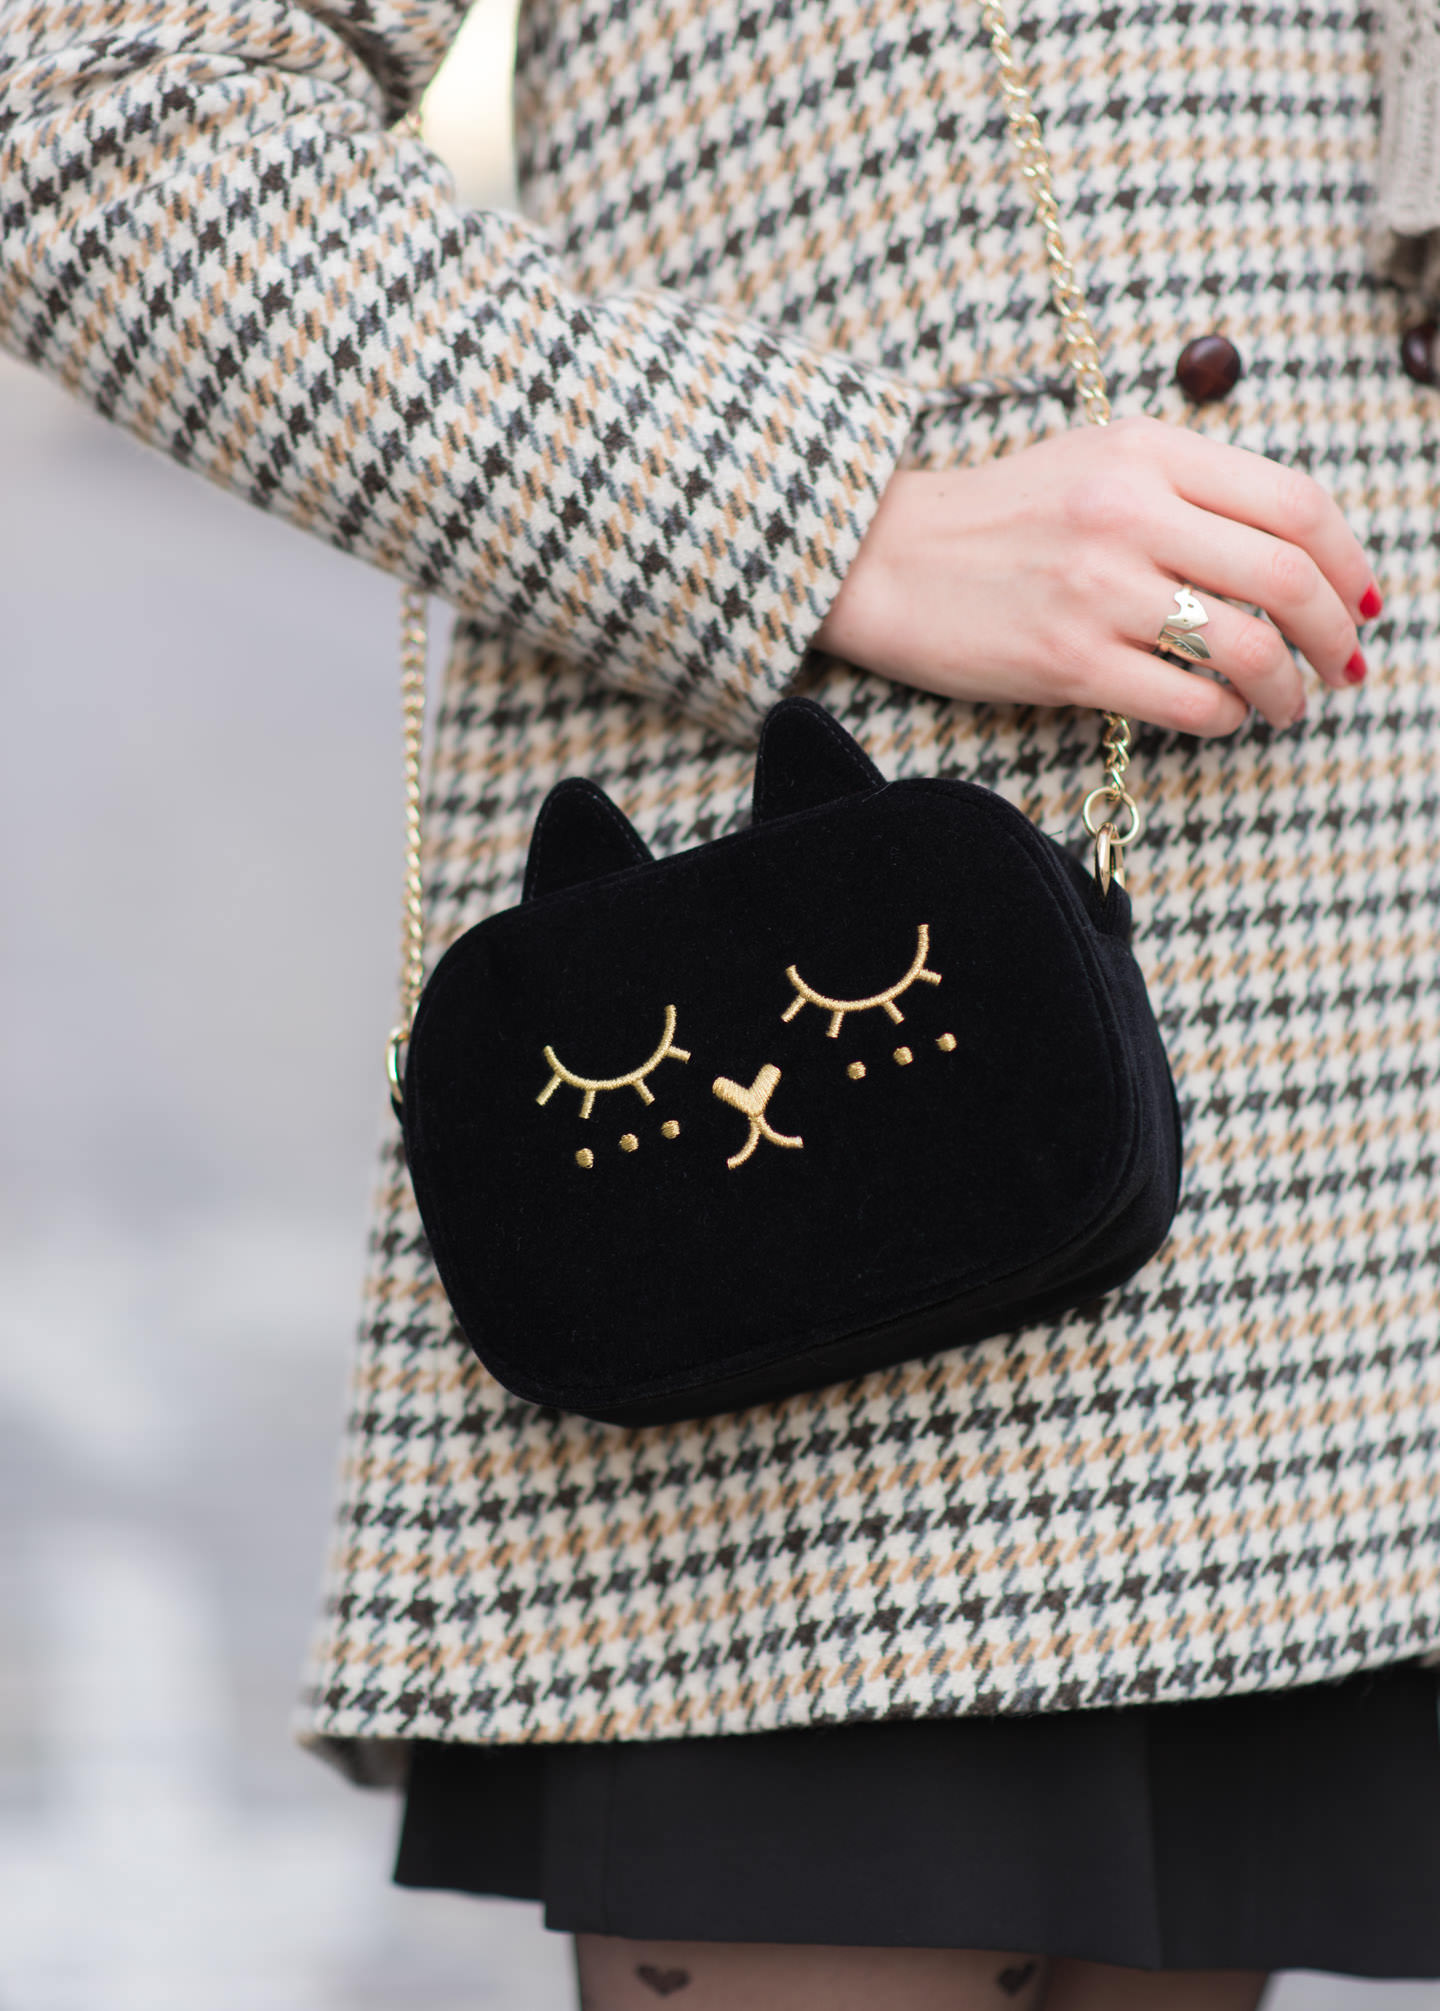 Blog-Mode-And-The-City-Lifestyle-Cinq-Petites-Choses-157-sac-asos-chat